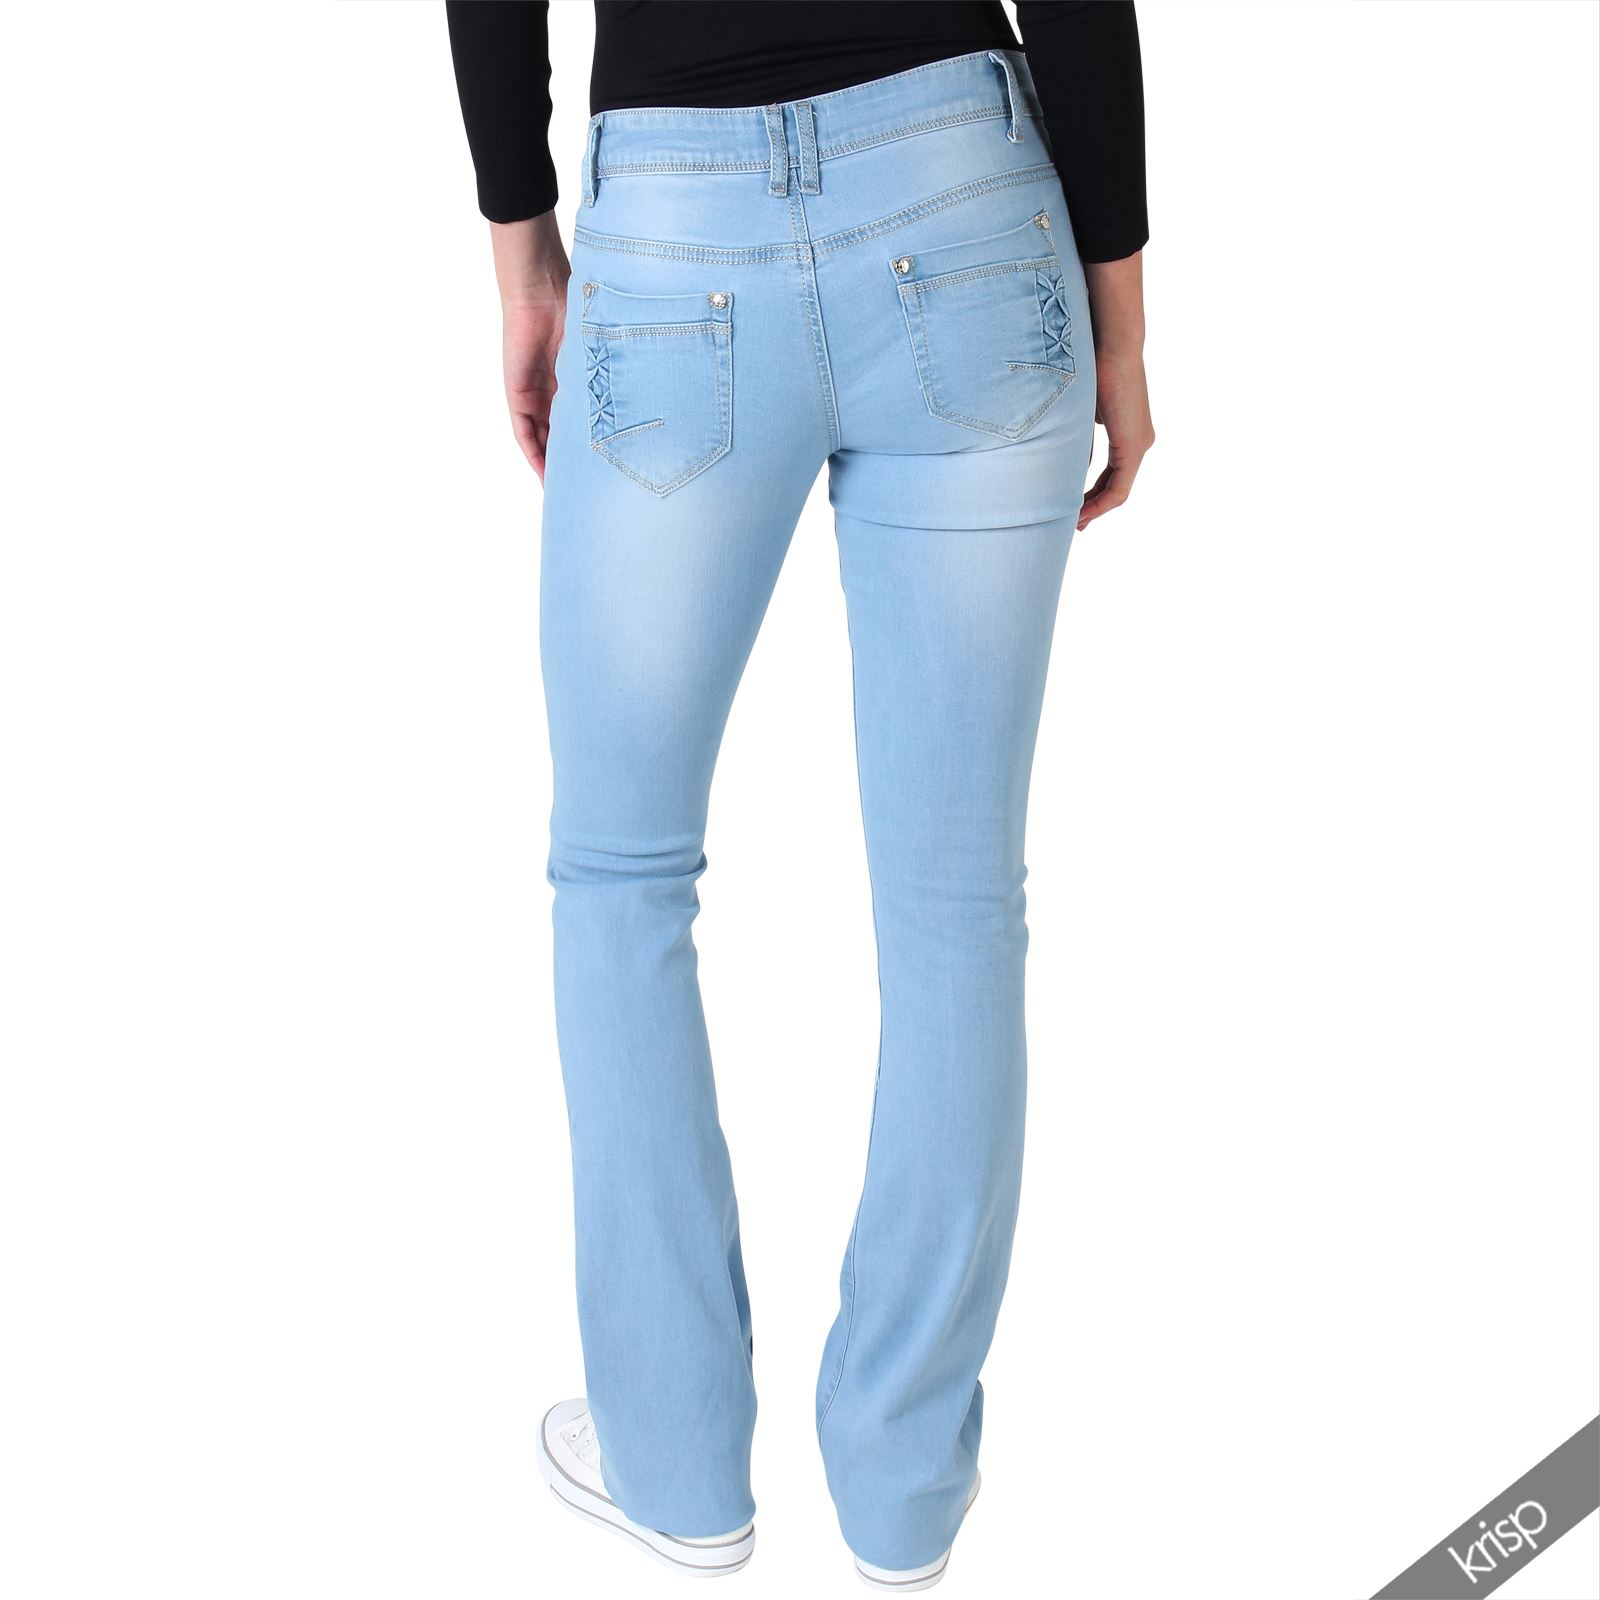 Check out the dynamic denim designs from jeans and capris to shorts. Check out classics like boot cut and straight cut silhouettes, along with distinctive styles like jeggings and skinny jeans. It's a great opportunity to experiment with colored washes and bold prints. Macy's is your destination for fun and fresh junior plus size fashion.